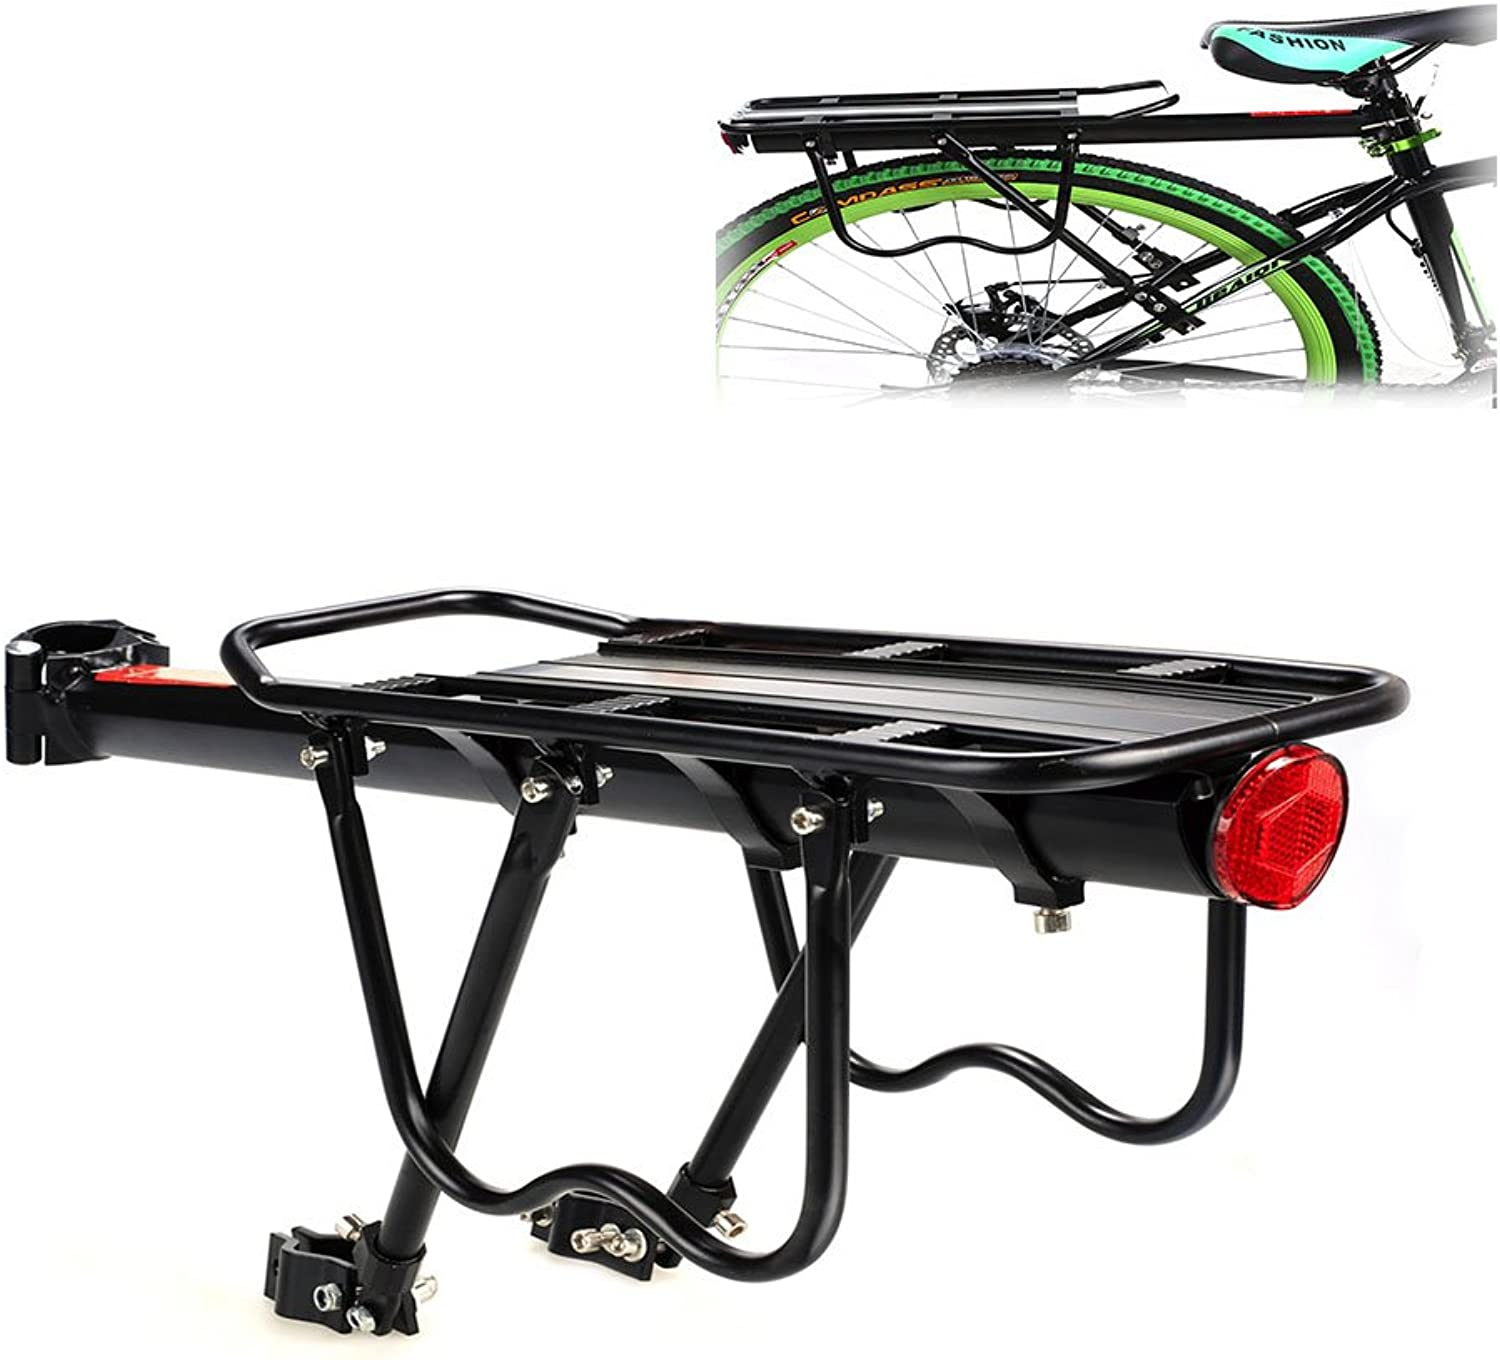 Bike Cargo Racks Stands Universal Touring Adjustable Rear Mount Clamp Bicycle Accessories